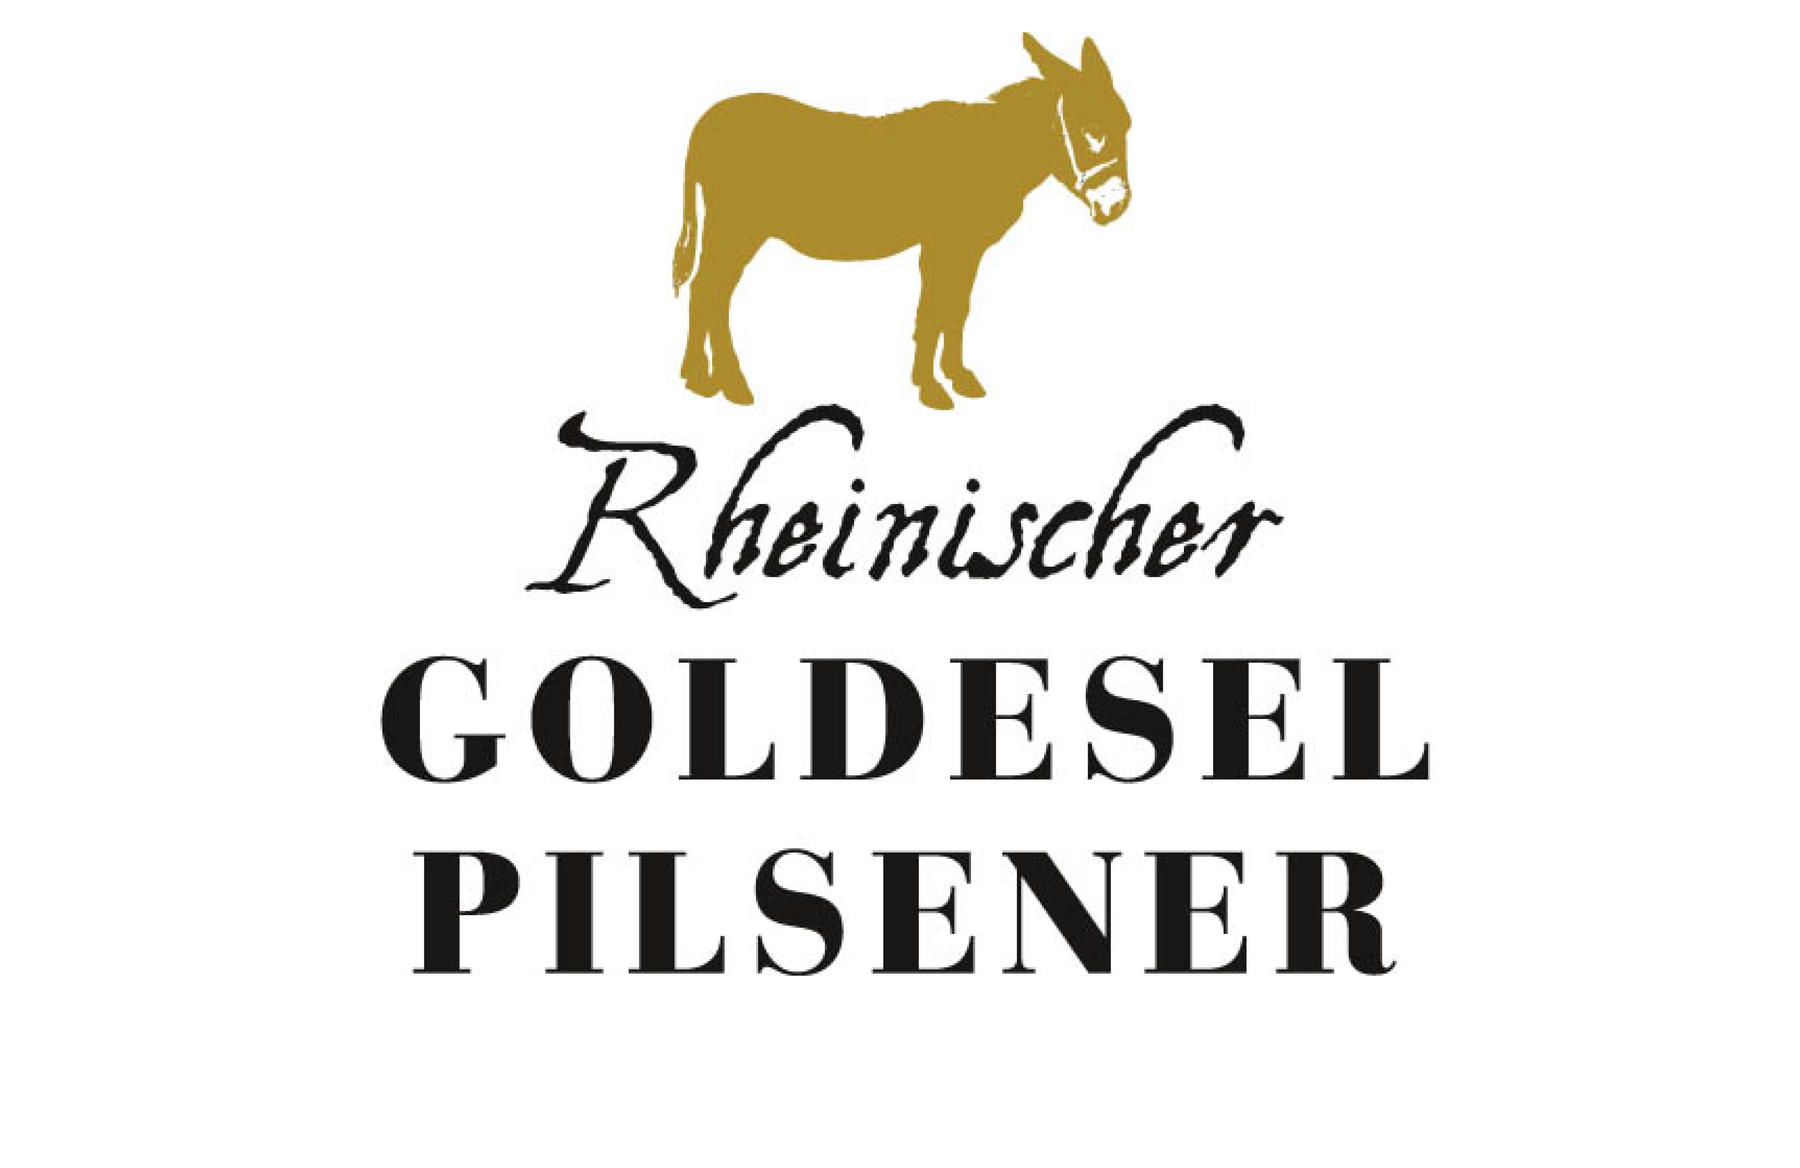 Goldesel Pilsener, Corporate Design, Packaging